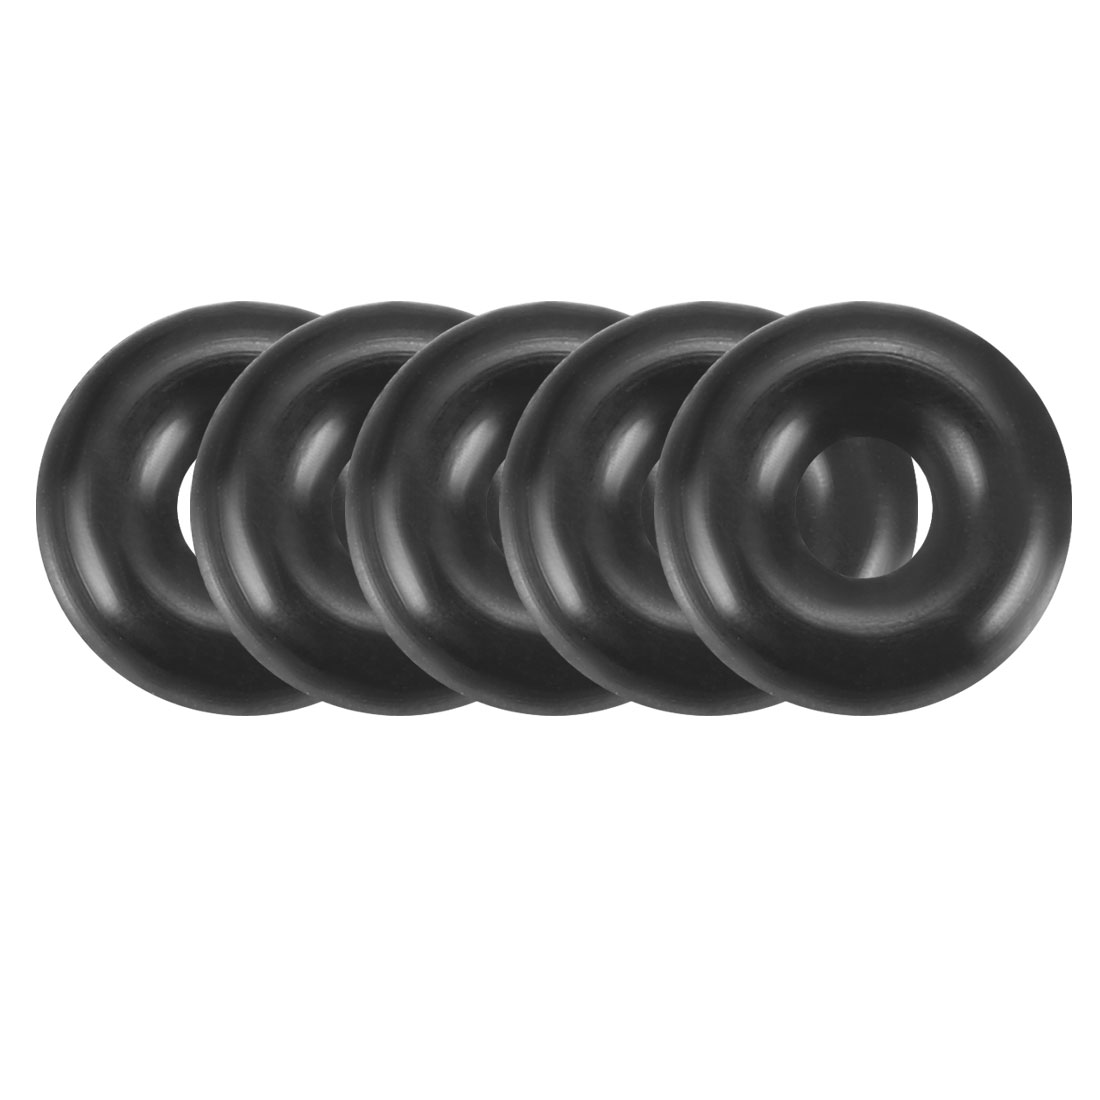 Universal O-Ring Rubber Seal Washers Grommets Black 7mm x 2.5mm 200pcs